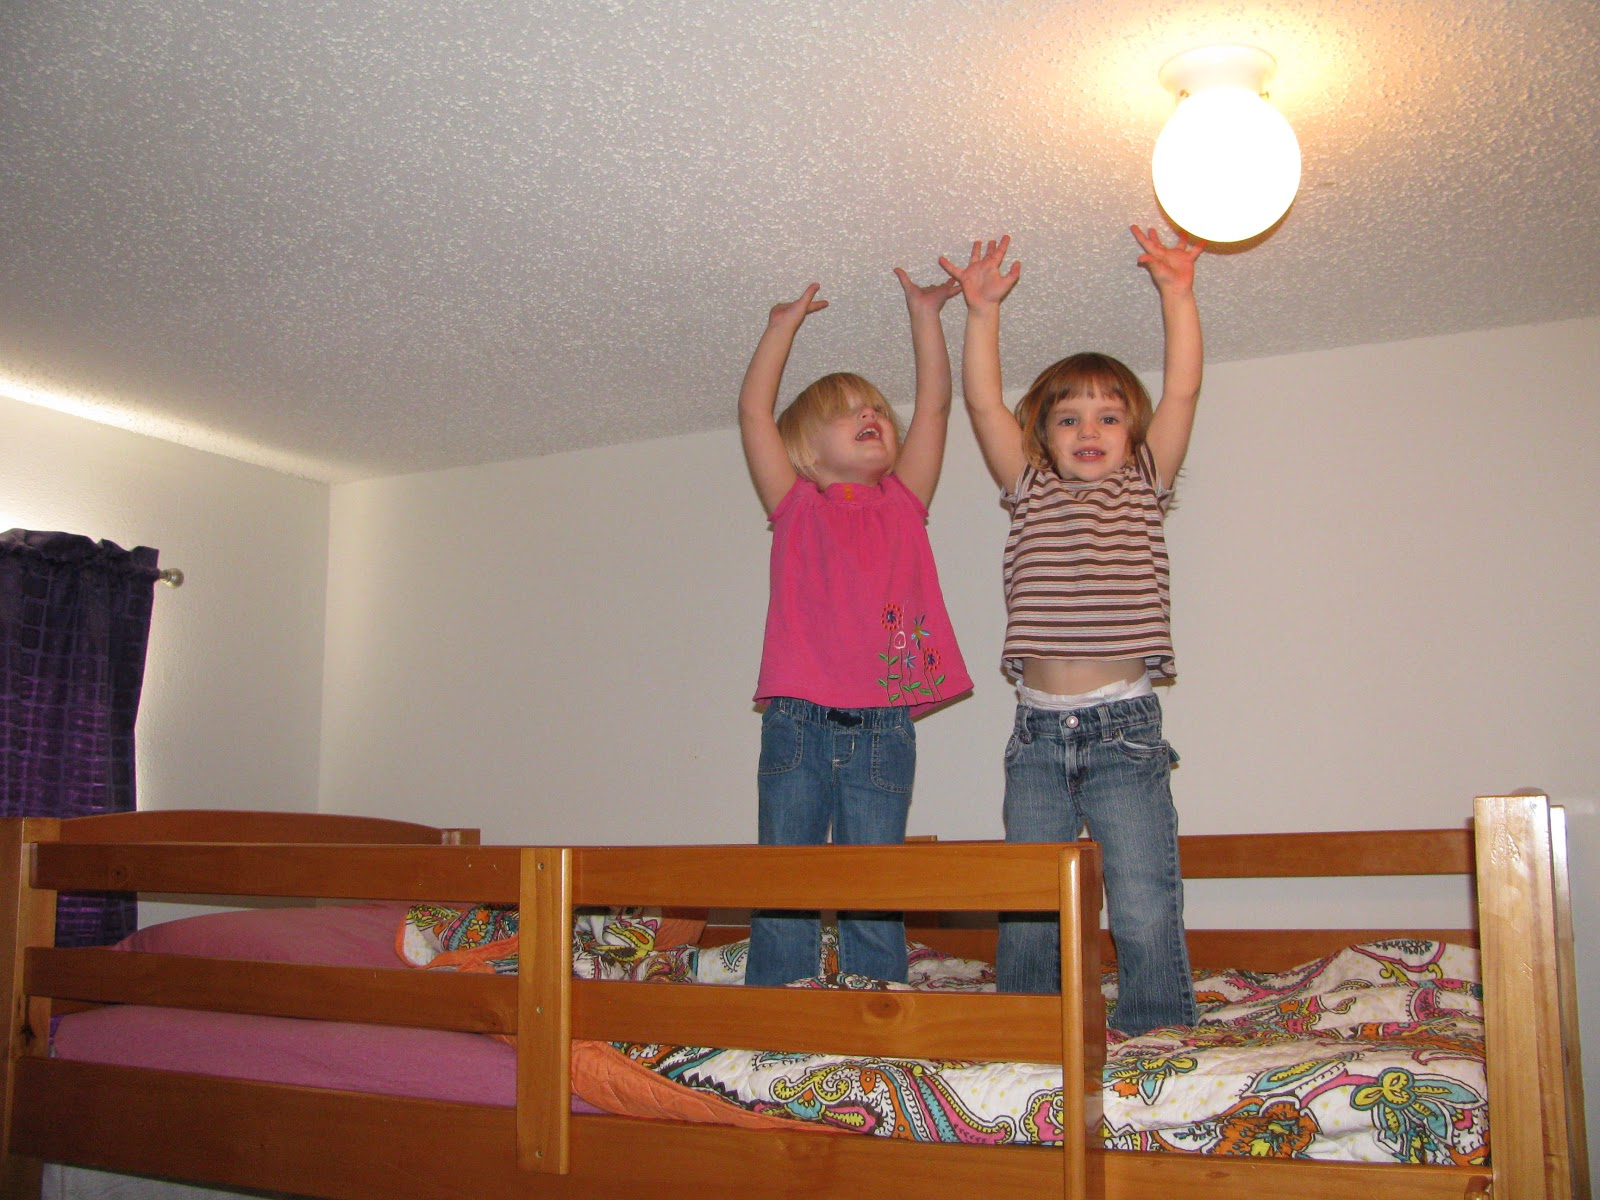 Top bunk bed curtains - My Kids Showing How Much Space They Have On The Top Bunk